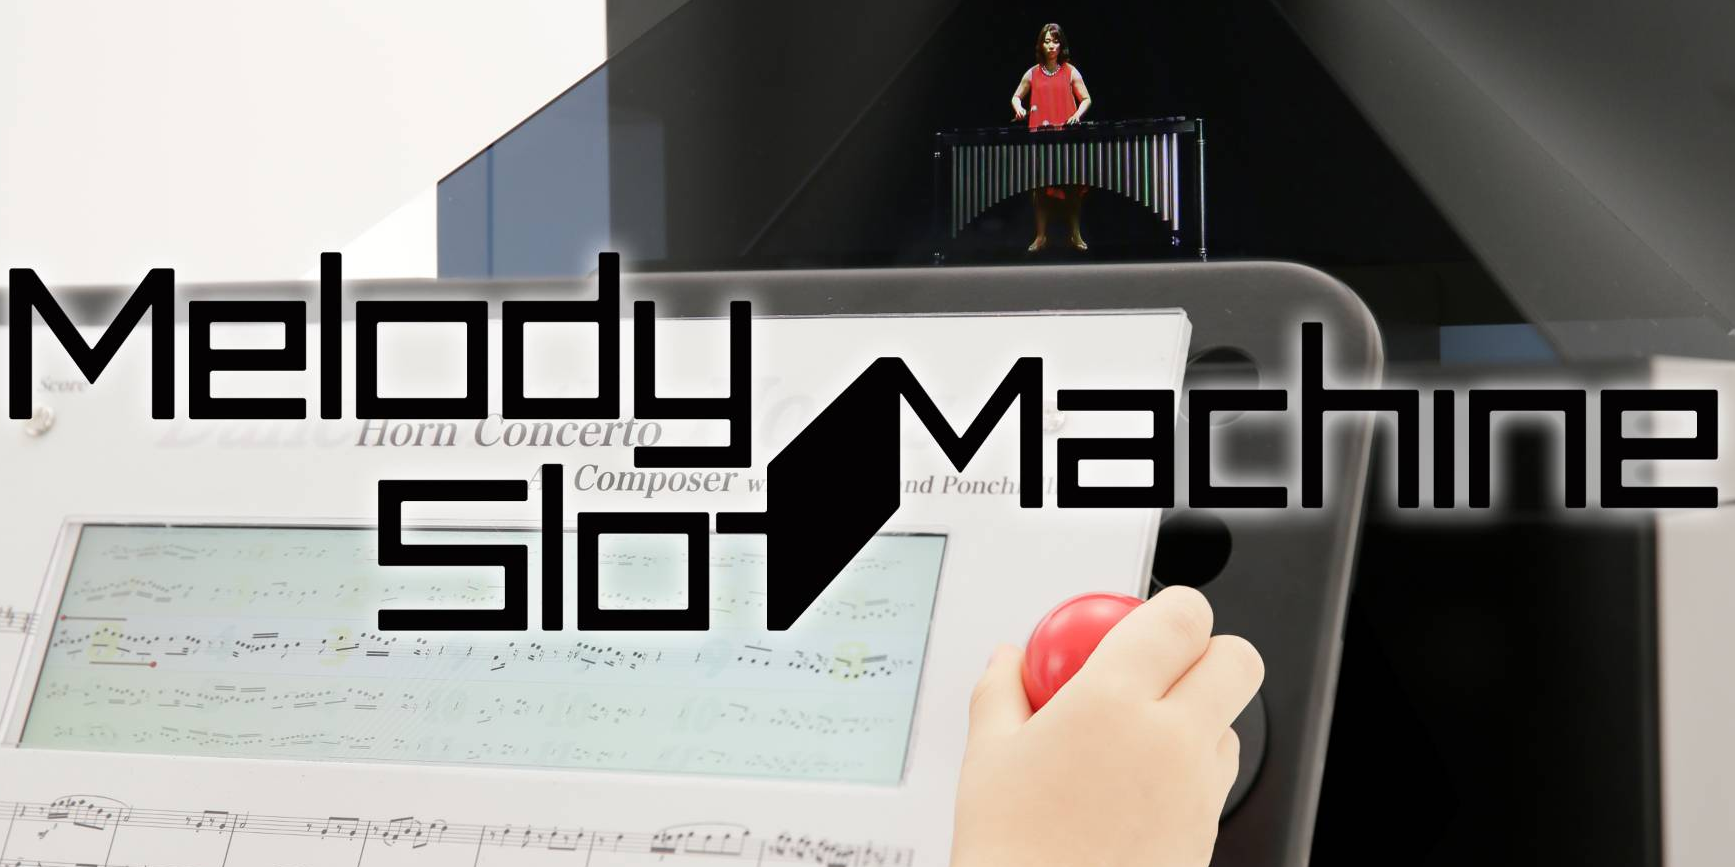 MELODY SLOT MACHINE